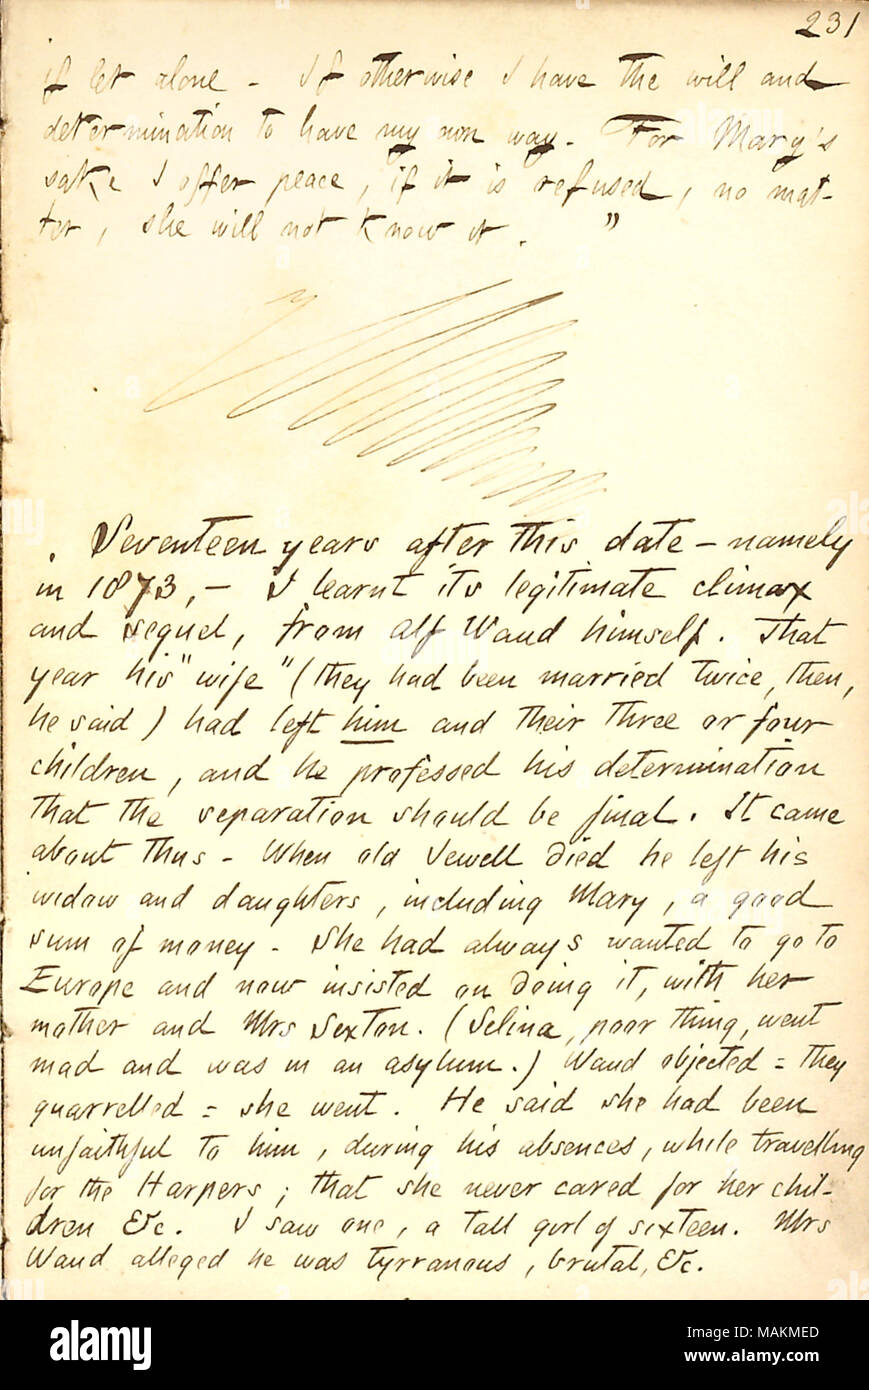 Includes the letter Alfred Waud wrote to Mrs. Jewell, explaining how he eloped with her daughter, Mary, and details from Thomas Butler Gunn in 1873 regarding the eventual end of their marriage.  Transcription: if let alone. If otherwise I [Alfred Waud] have the will and determination to have my own way. For Mary [Brainard]'s sake I offer peace, if it is refused, no matter, she will not know it.' / Seventeen years after this date  ? namely in 1873  ? I learnt its legitimate climax and sequel, from Alf Waud himself. That year his 'wife' (they had been married twice, then, he said) had left him a - Stock Image